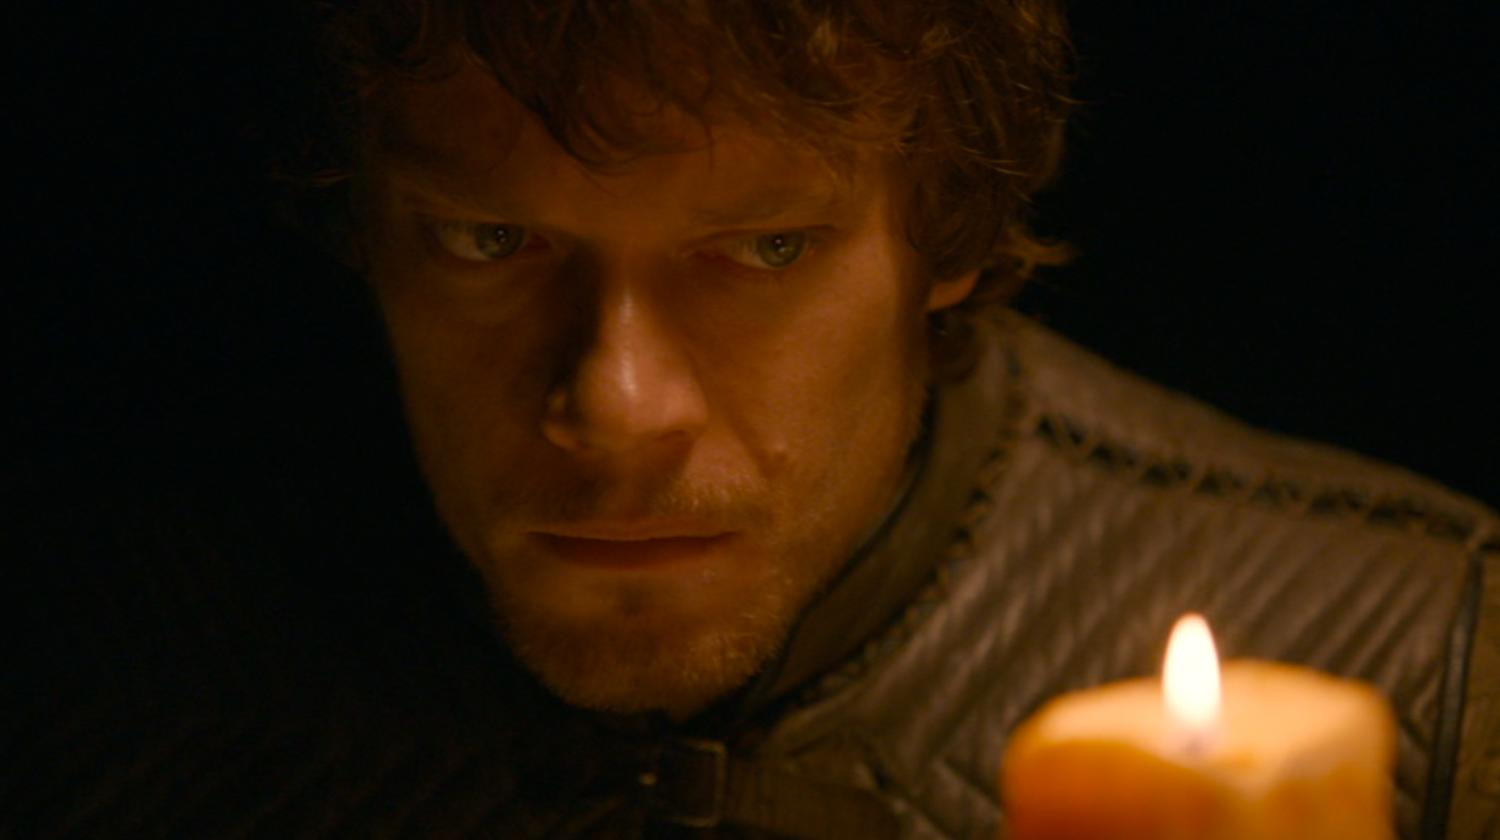 Theon (Alfie Allen) in GOT 203